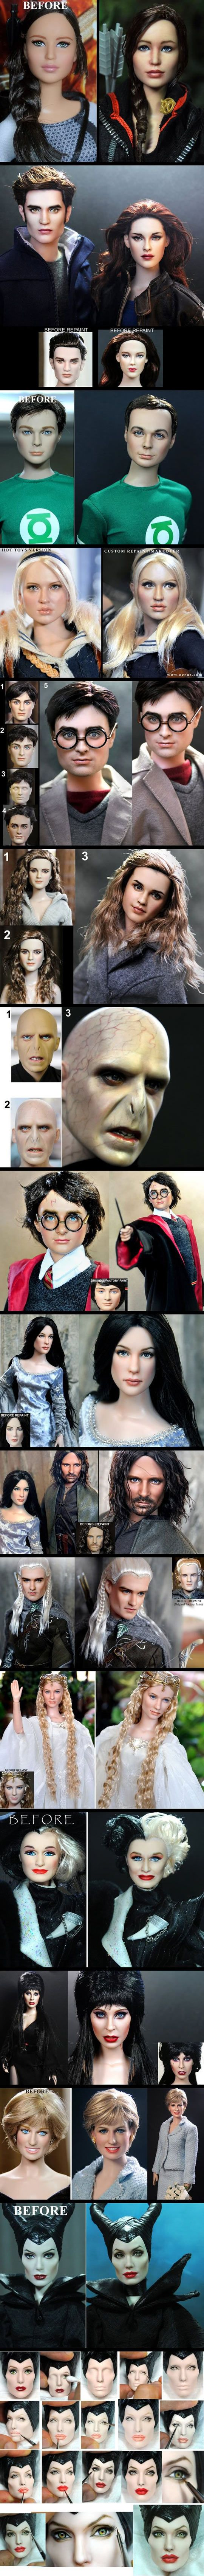 Dolls Turned Into Masterpieces